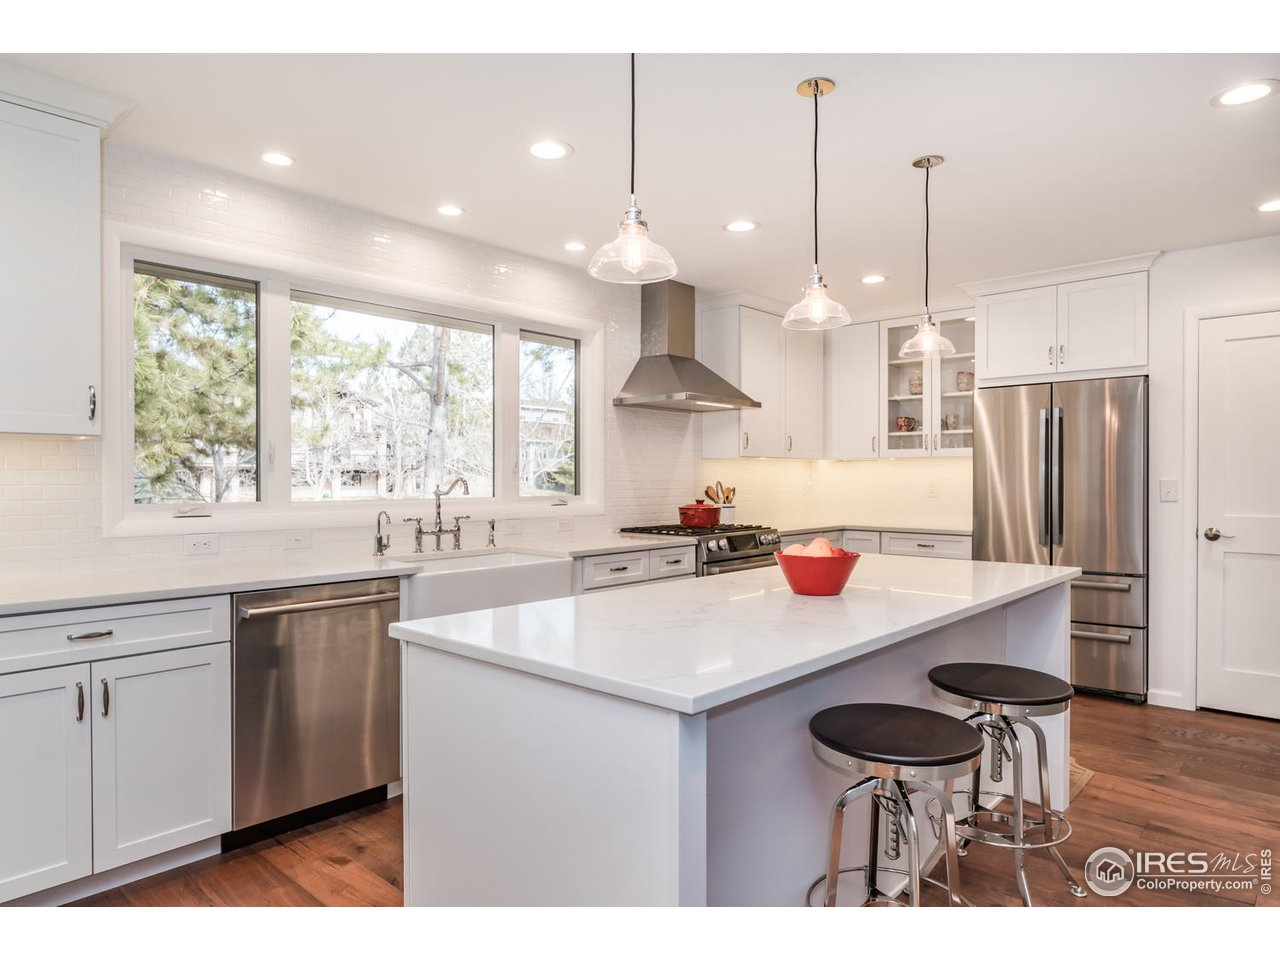 Gorgeous Remodel!